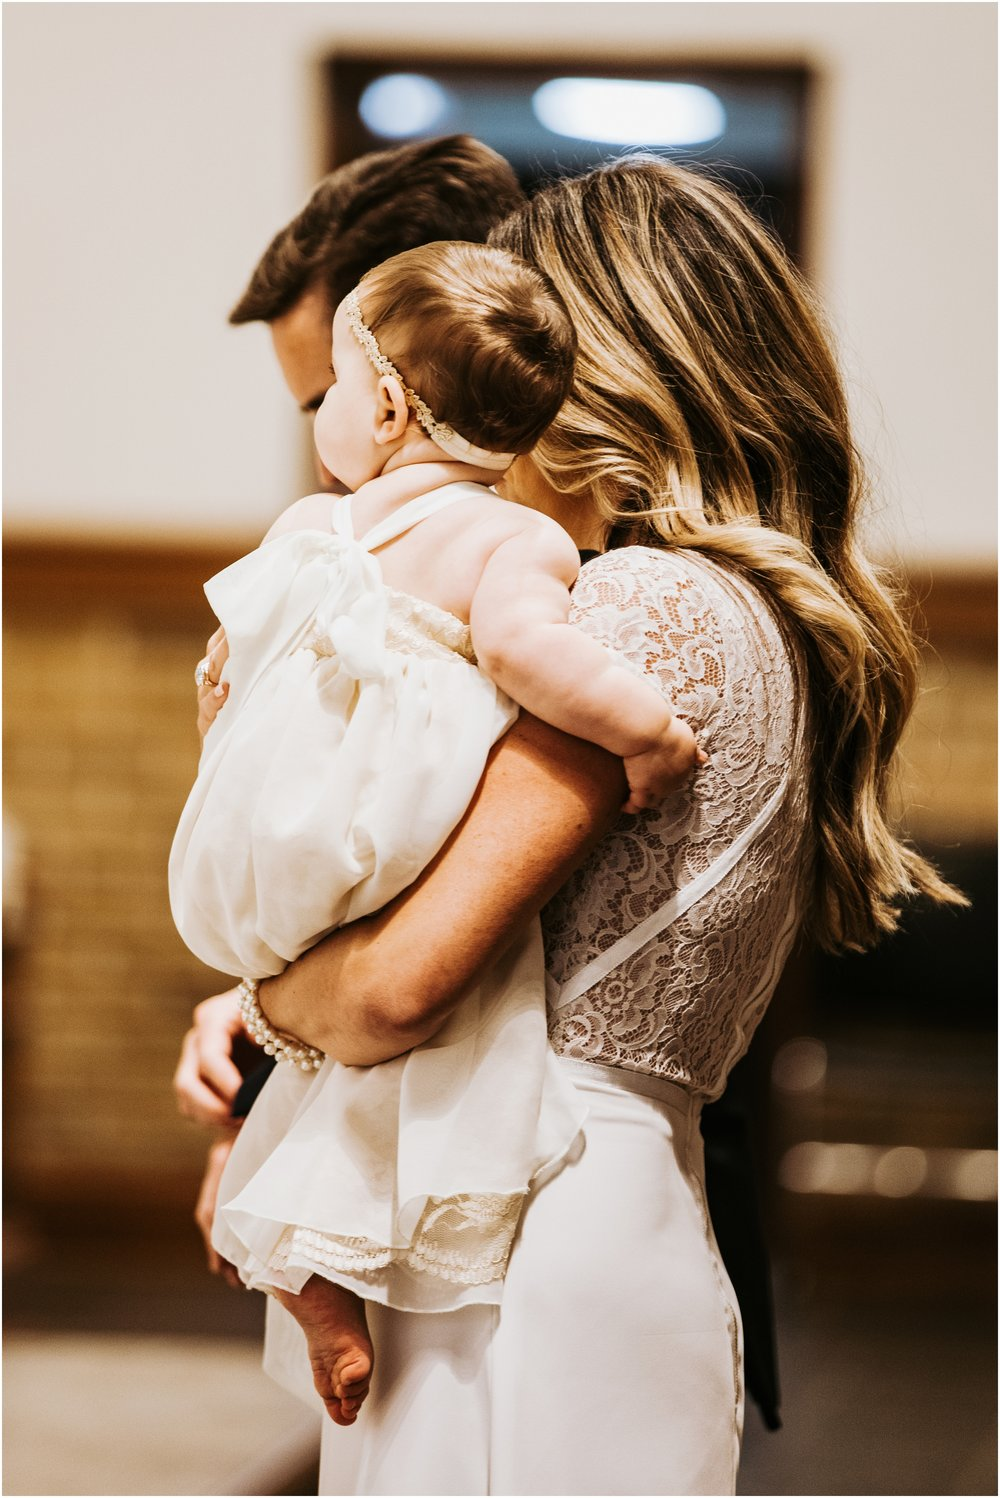 Mire-Blessing-Baptism-Family-2018-June-8222_quaint-and-whim-lifestyle-photographer-louisiana-.jpg